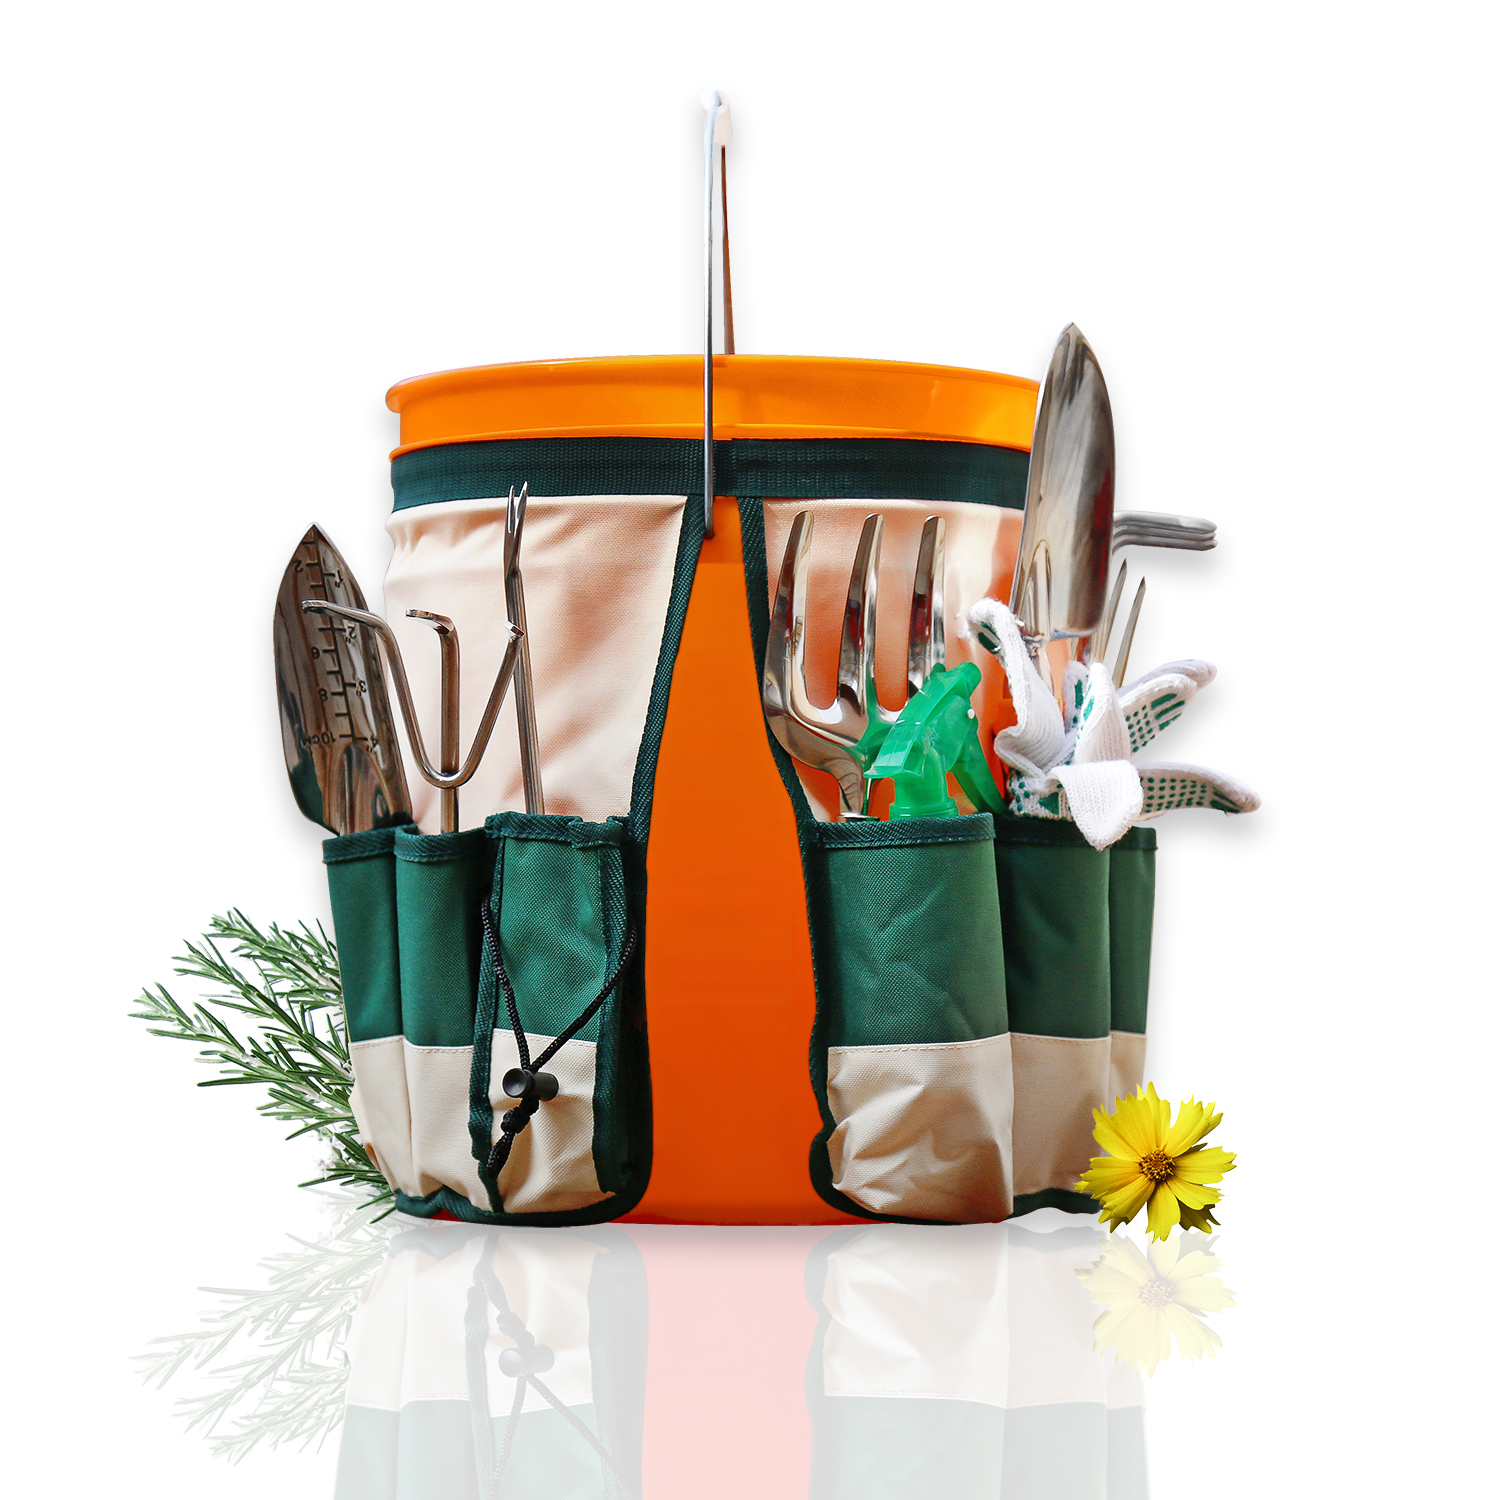 _HR4909-Bucket-Caddy-Apron-main02_variation.jpg